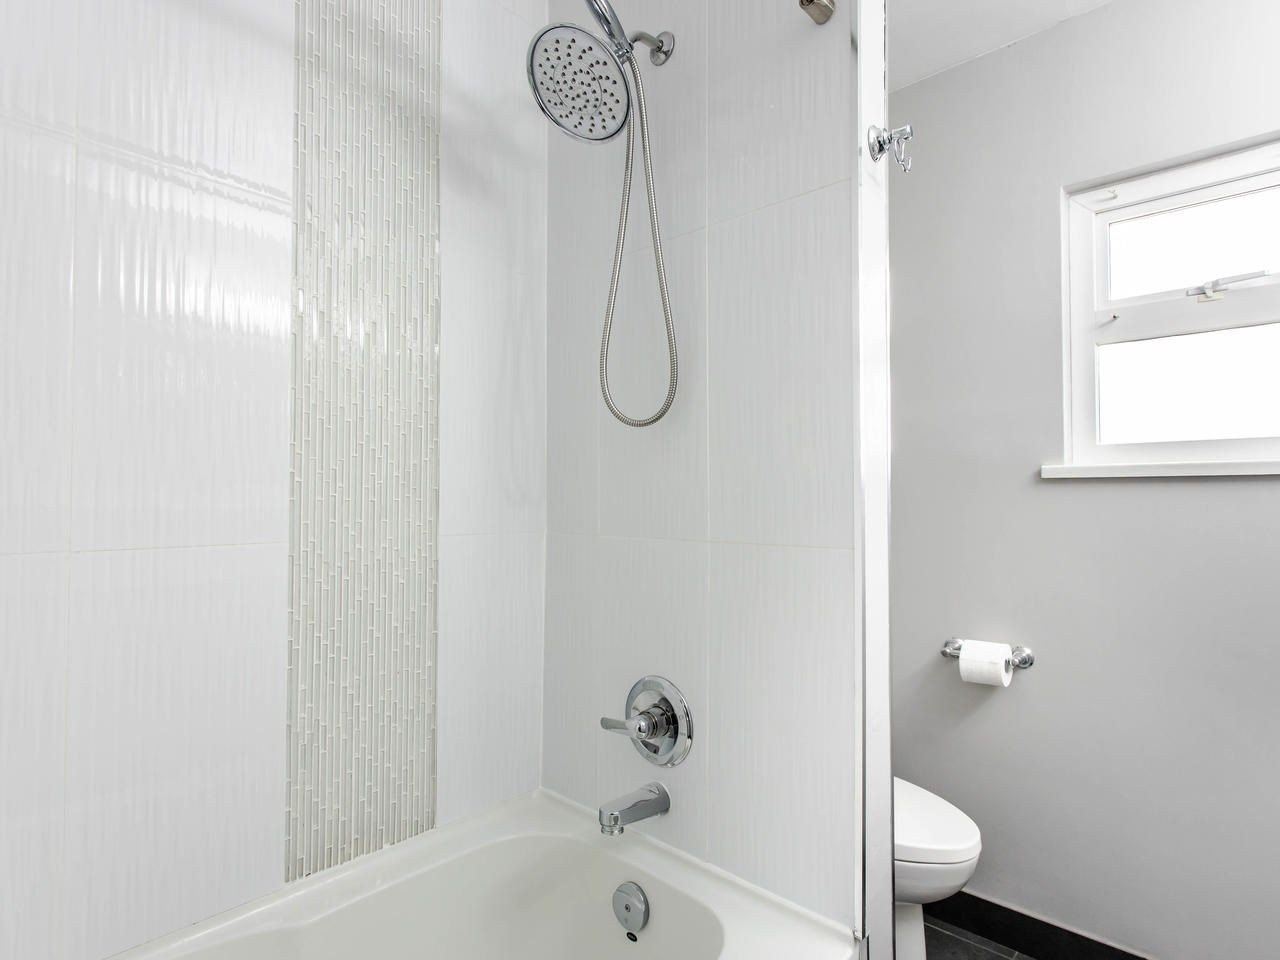 Photo 14: Photos: 4653 UNION STREET in Burnaby: Capitol Hill BN House for sale (Burnaby North)  : MLS®# R2493161